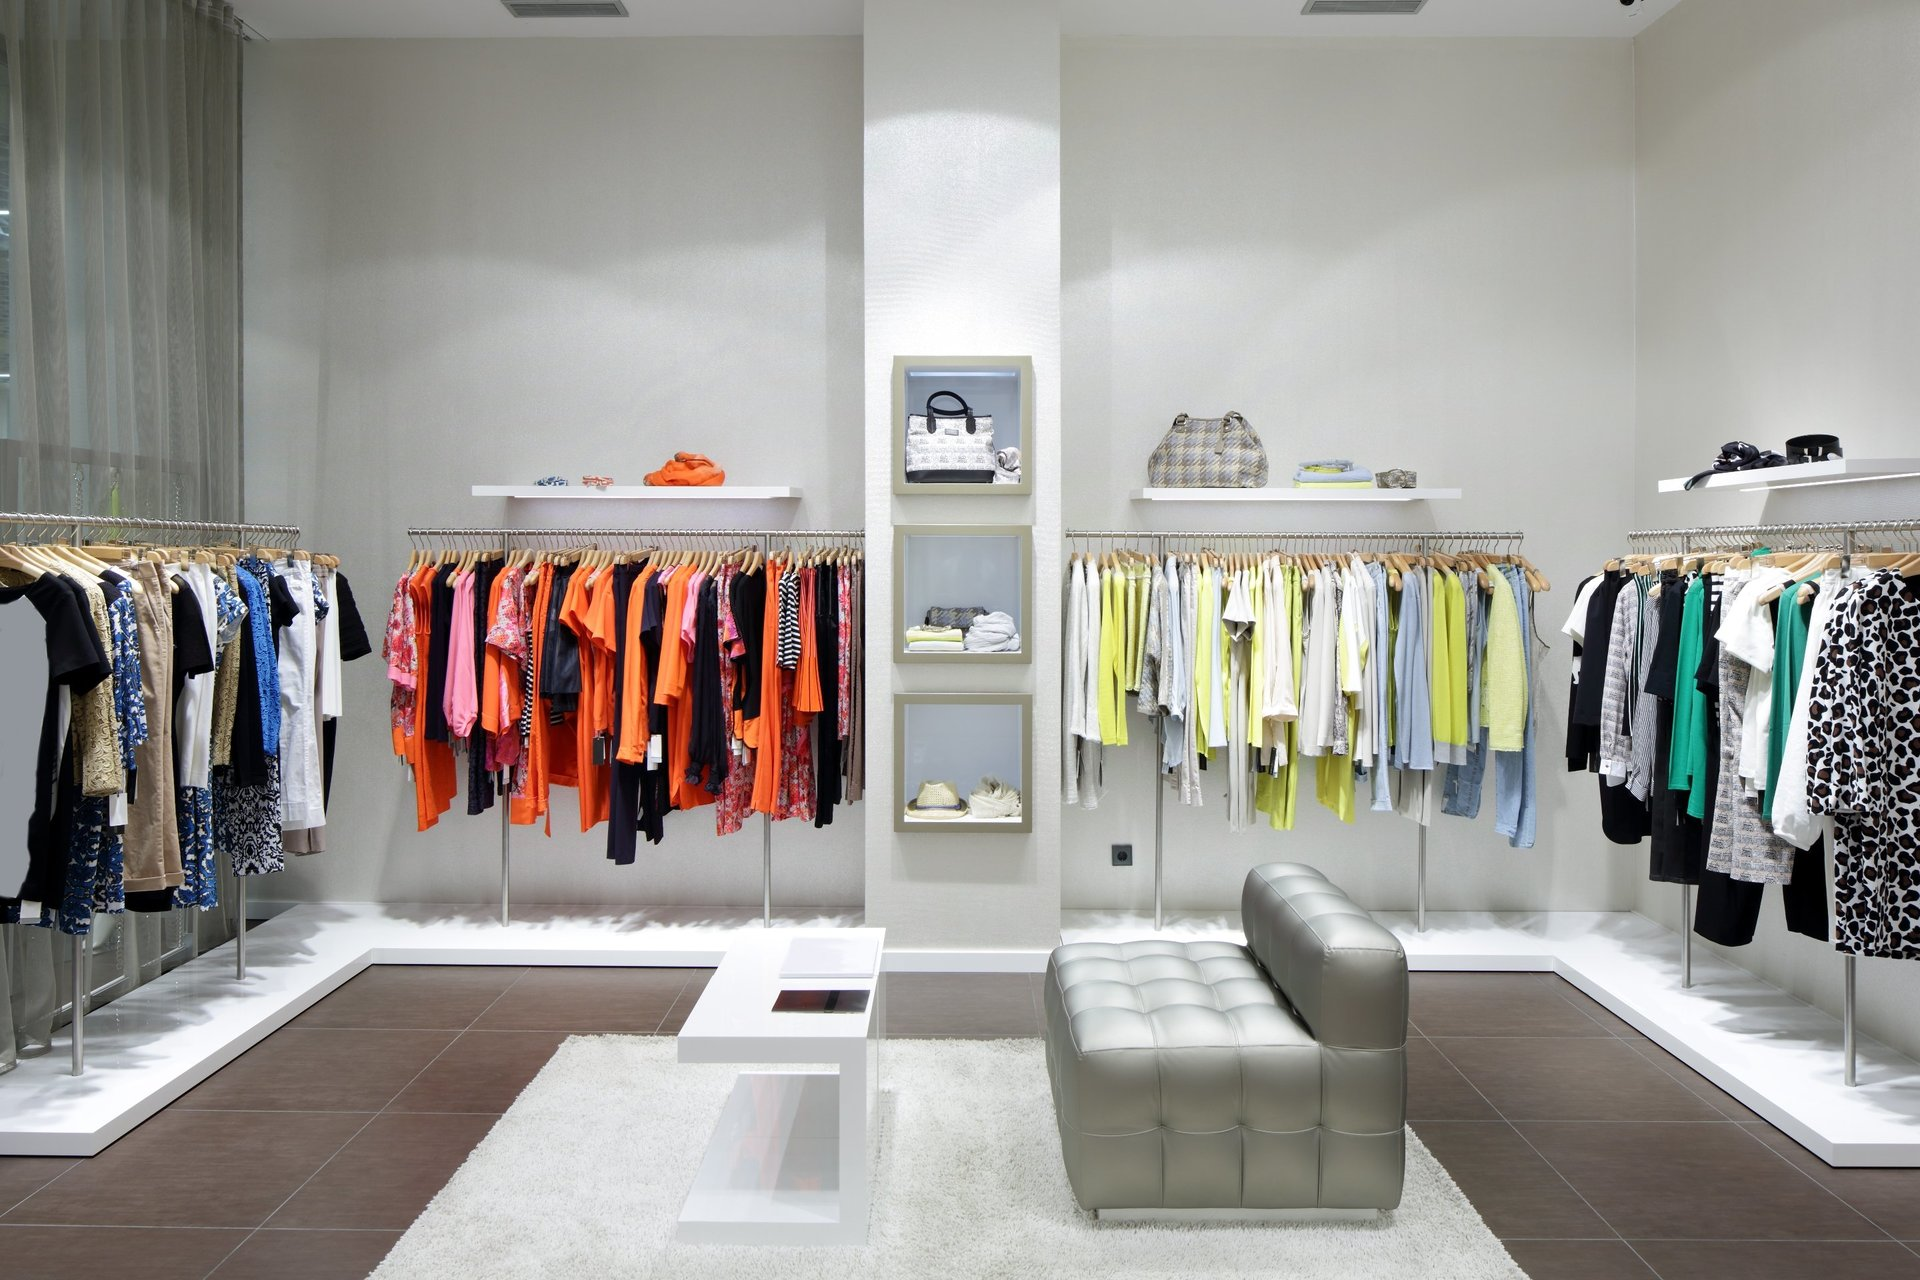 Best Deals & Coupons in Toronto, ON - Groupon: Deals and Best fashion boutiques toronto